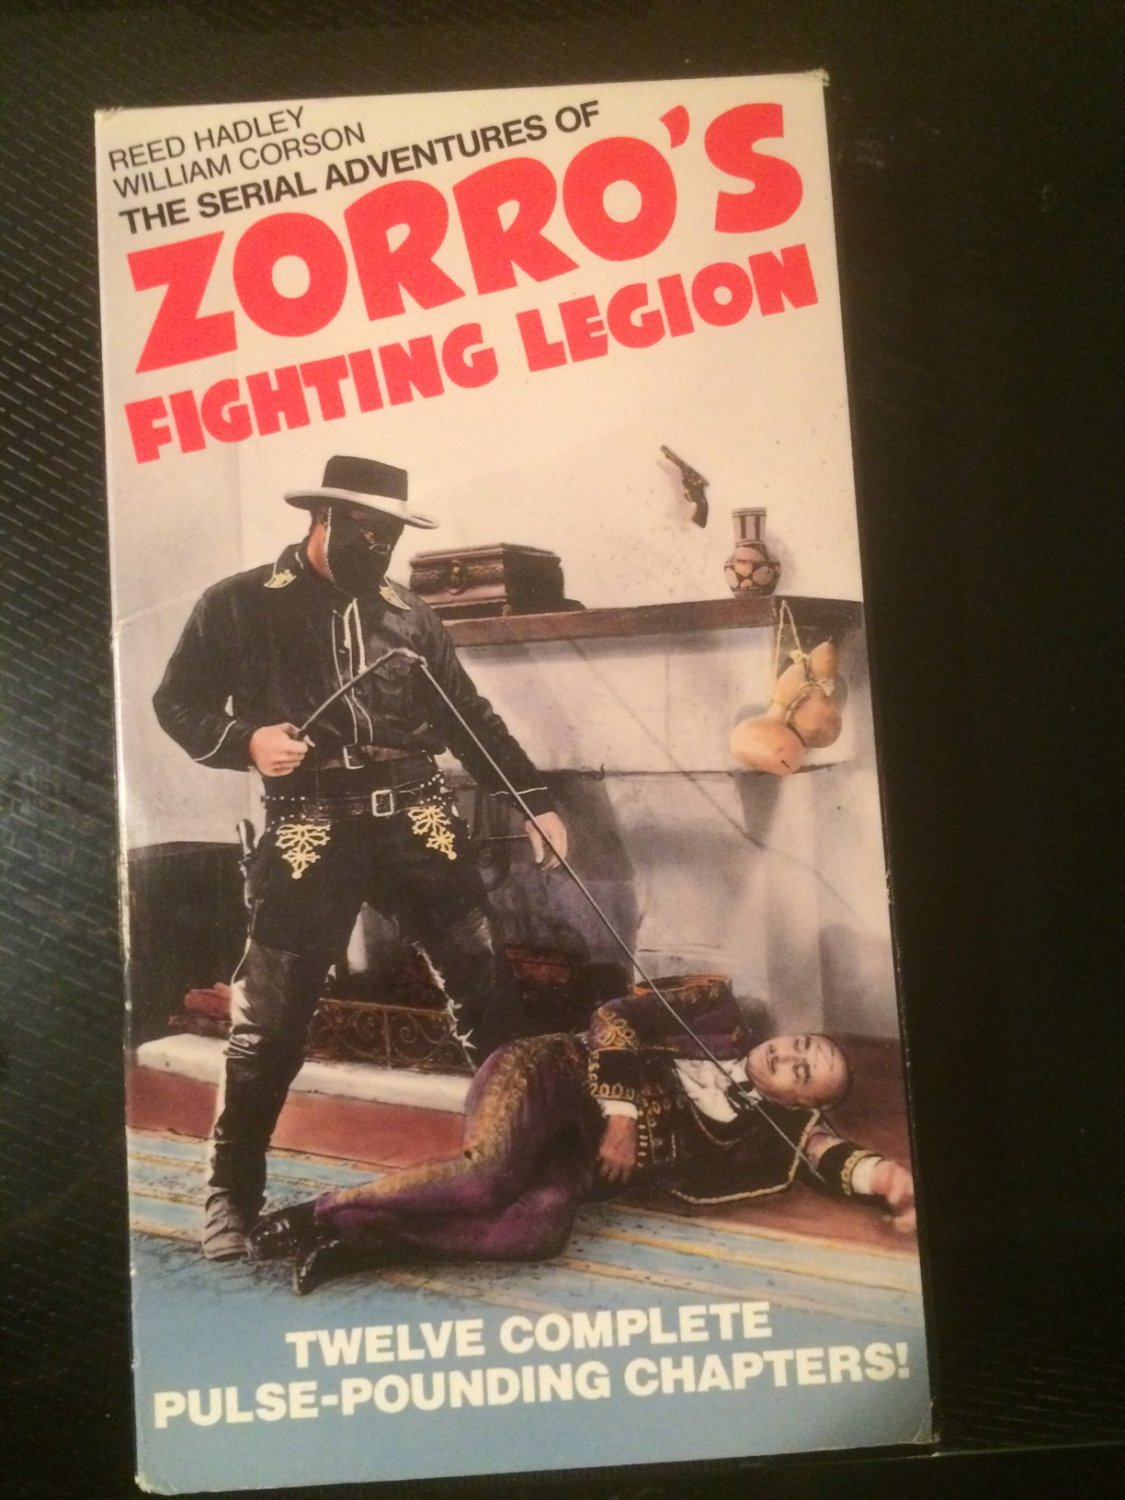 The Serial Adventures of Zorro's Fighting Legion - VHS - Used